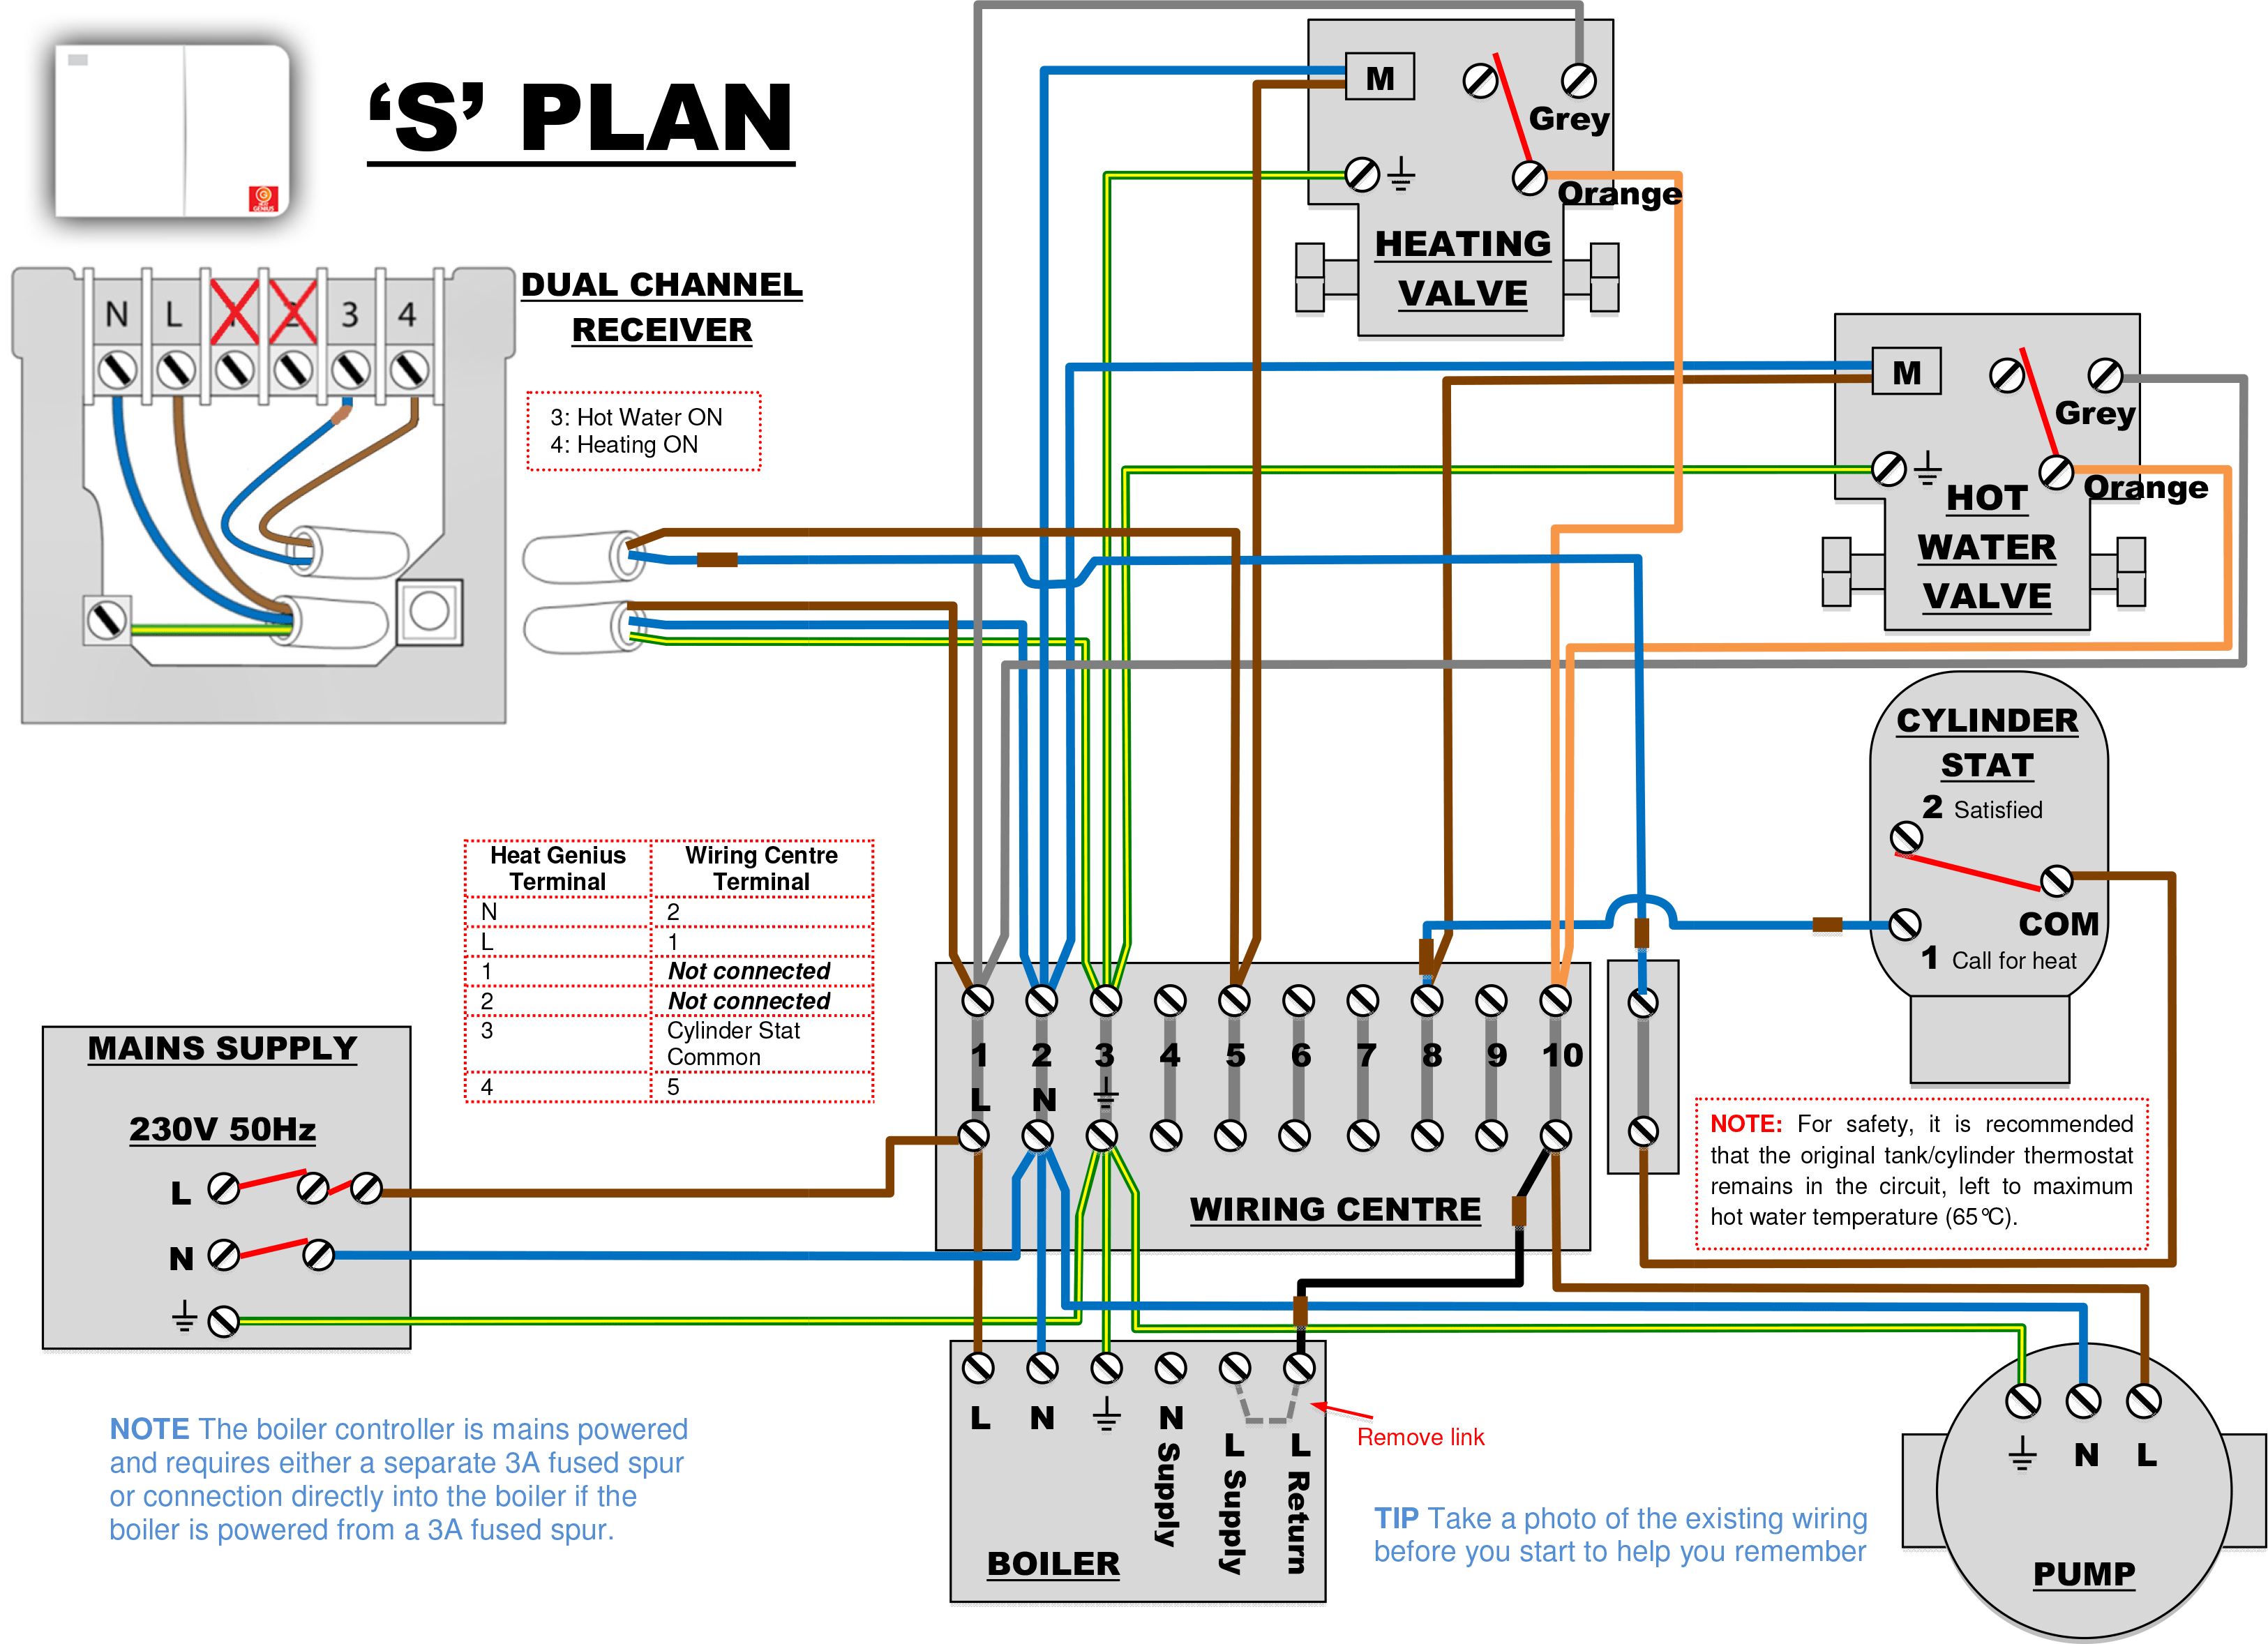 [QNCB_7524]  Siemens G120 Wiring Diagram On Images Free Download Inside With Micromaster  440 | Central heating system, Heating systems, Thermostat wiring | Free Download S Series Wiring Diagram |  | Pinterest